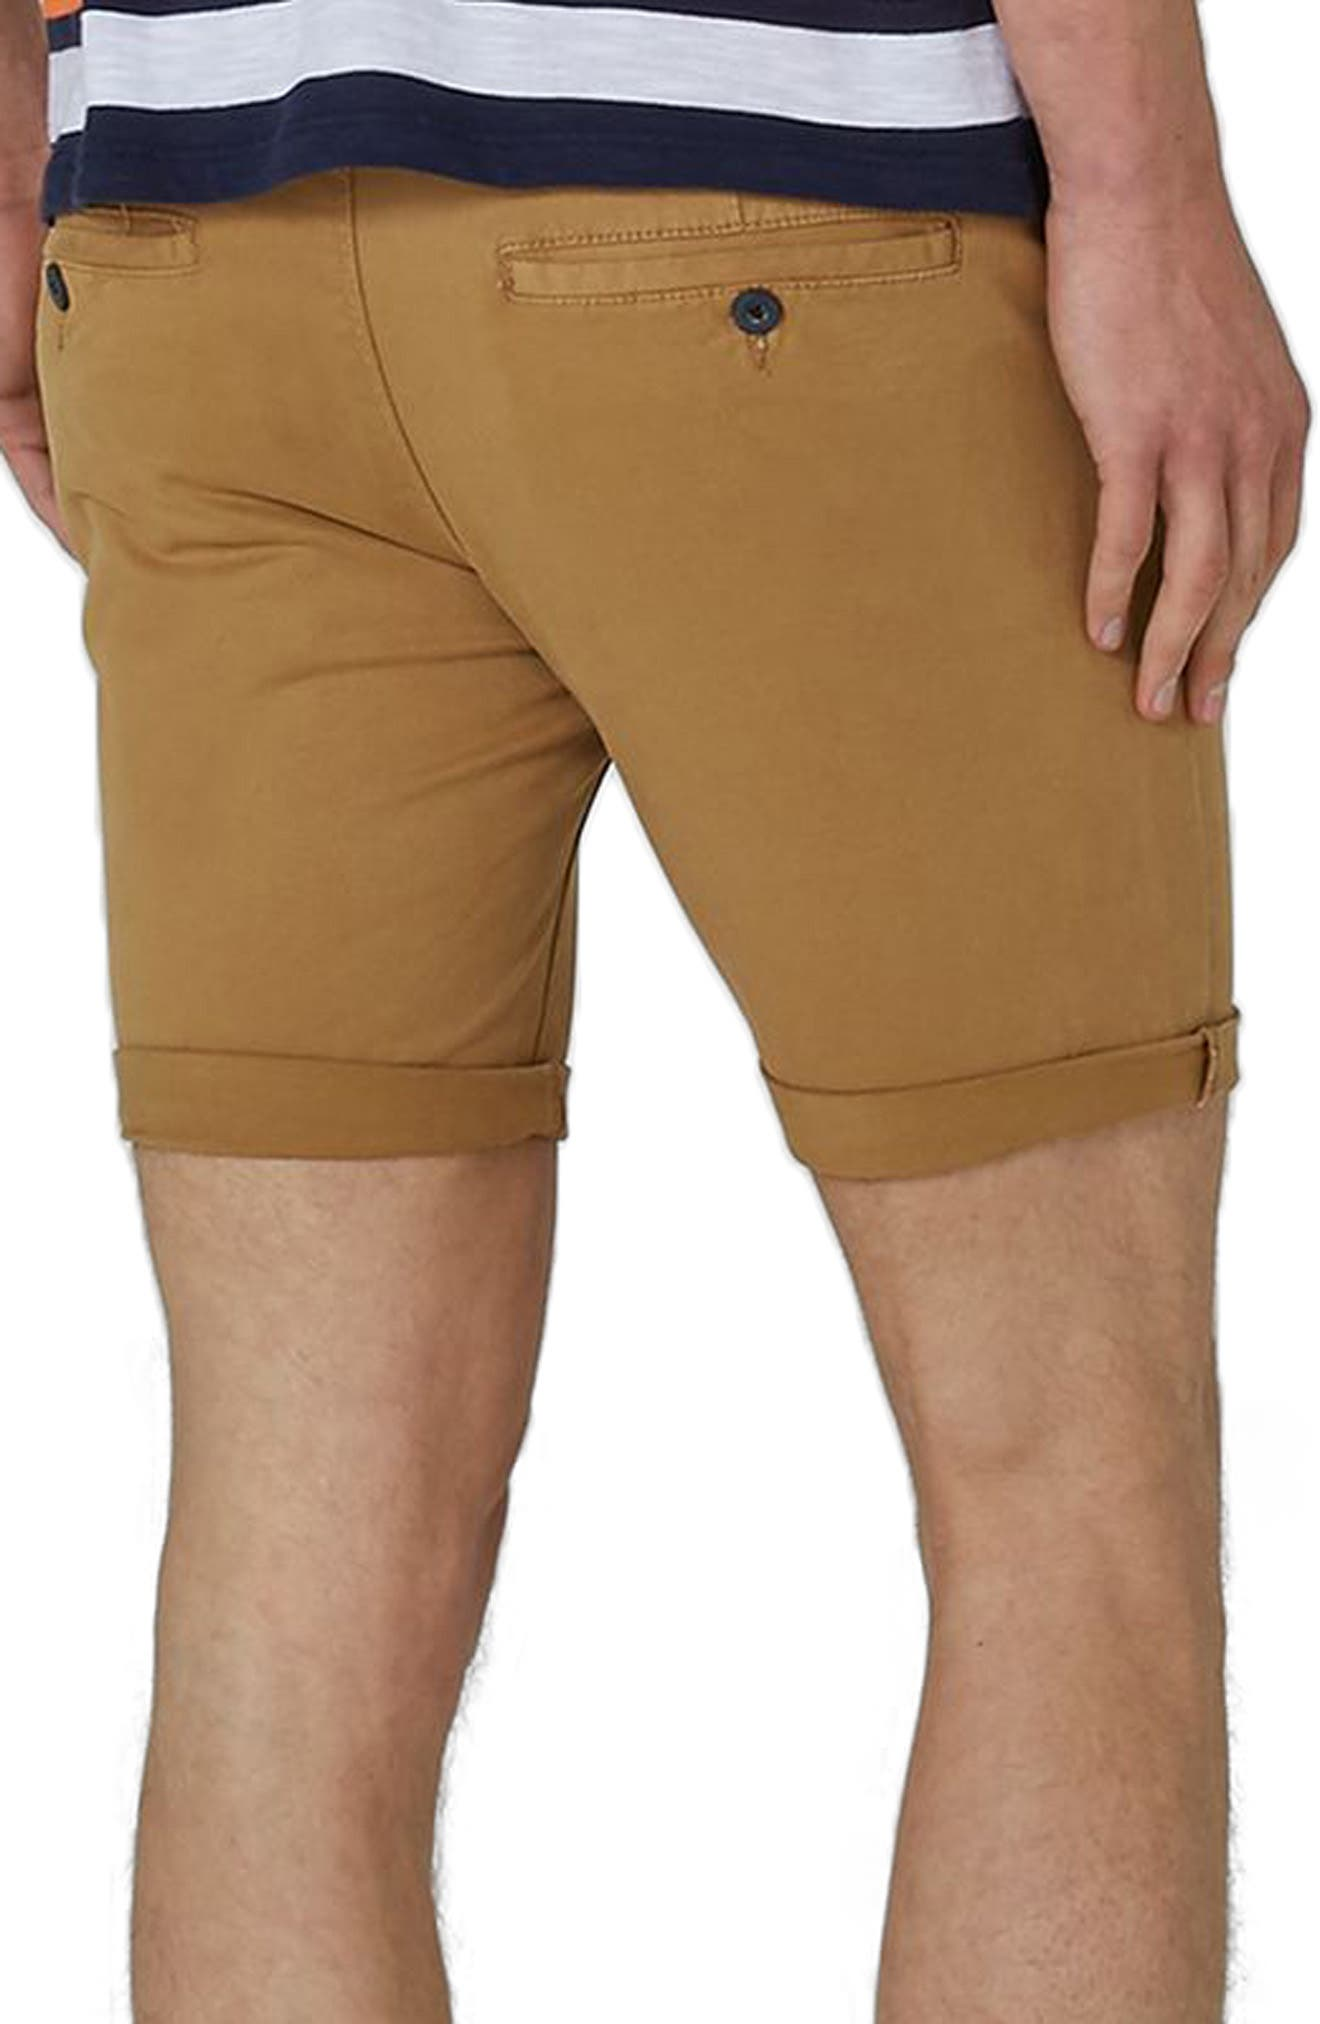 Stretch Skinny Chino Shorts,                             Alternate thumbnail 2, color,                             Yellow